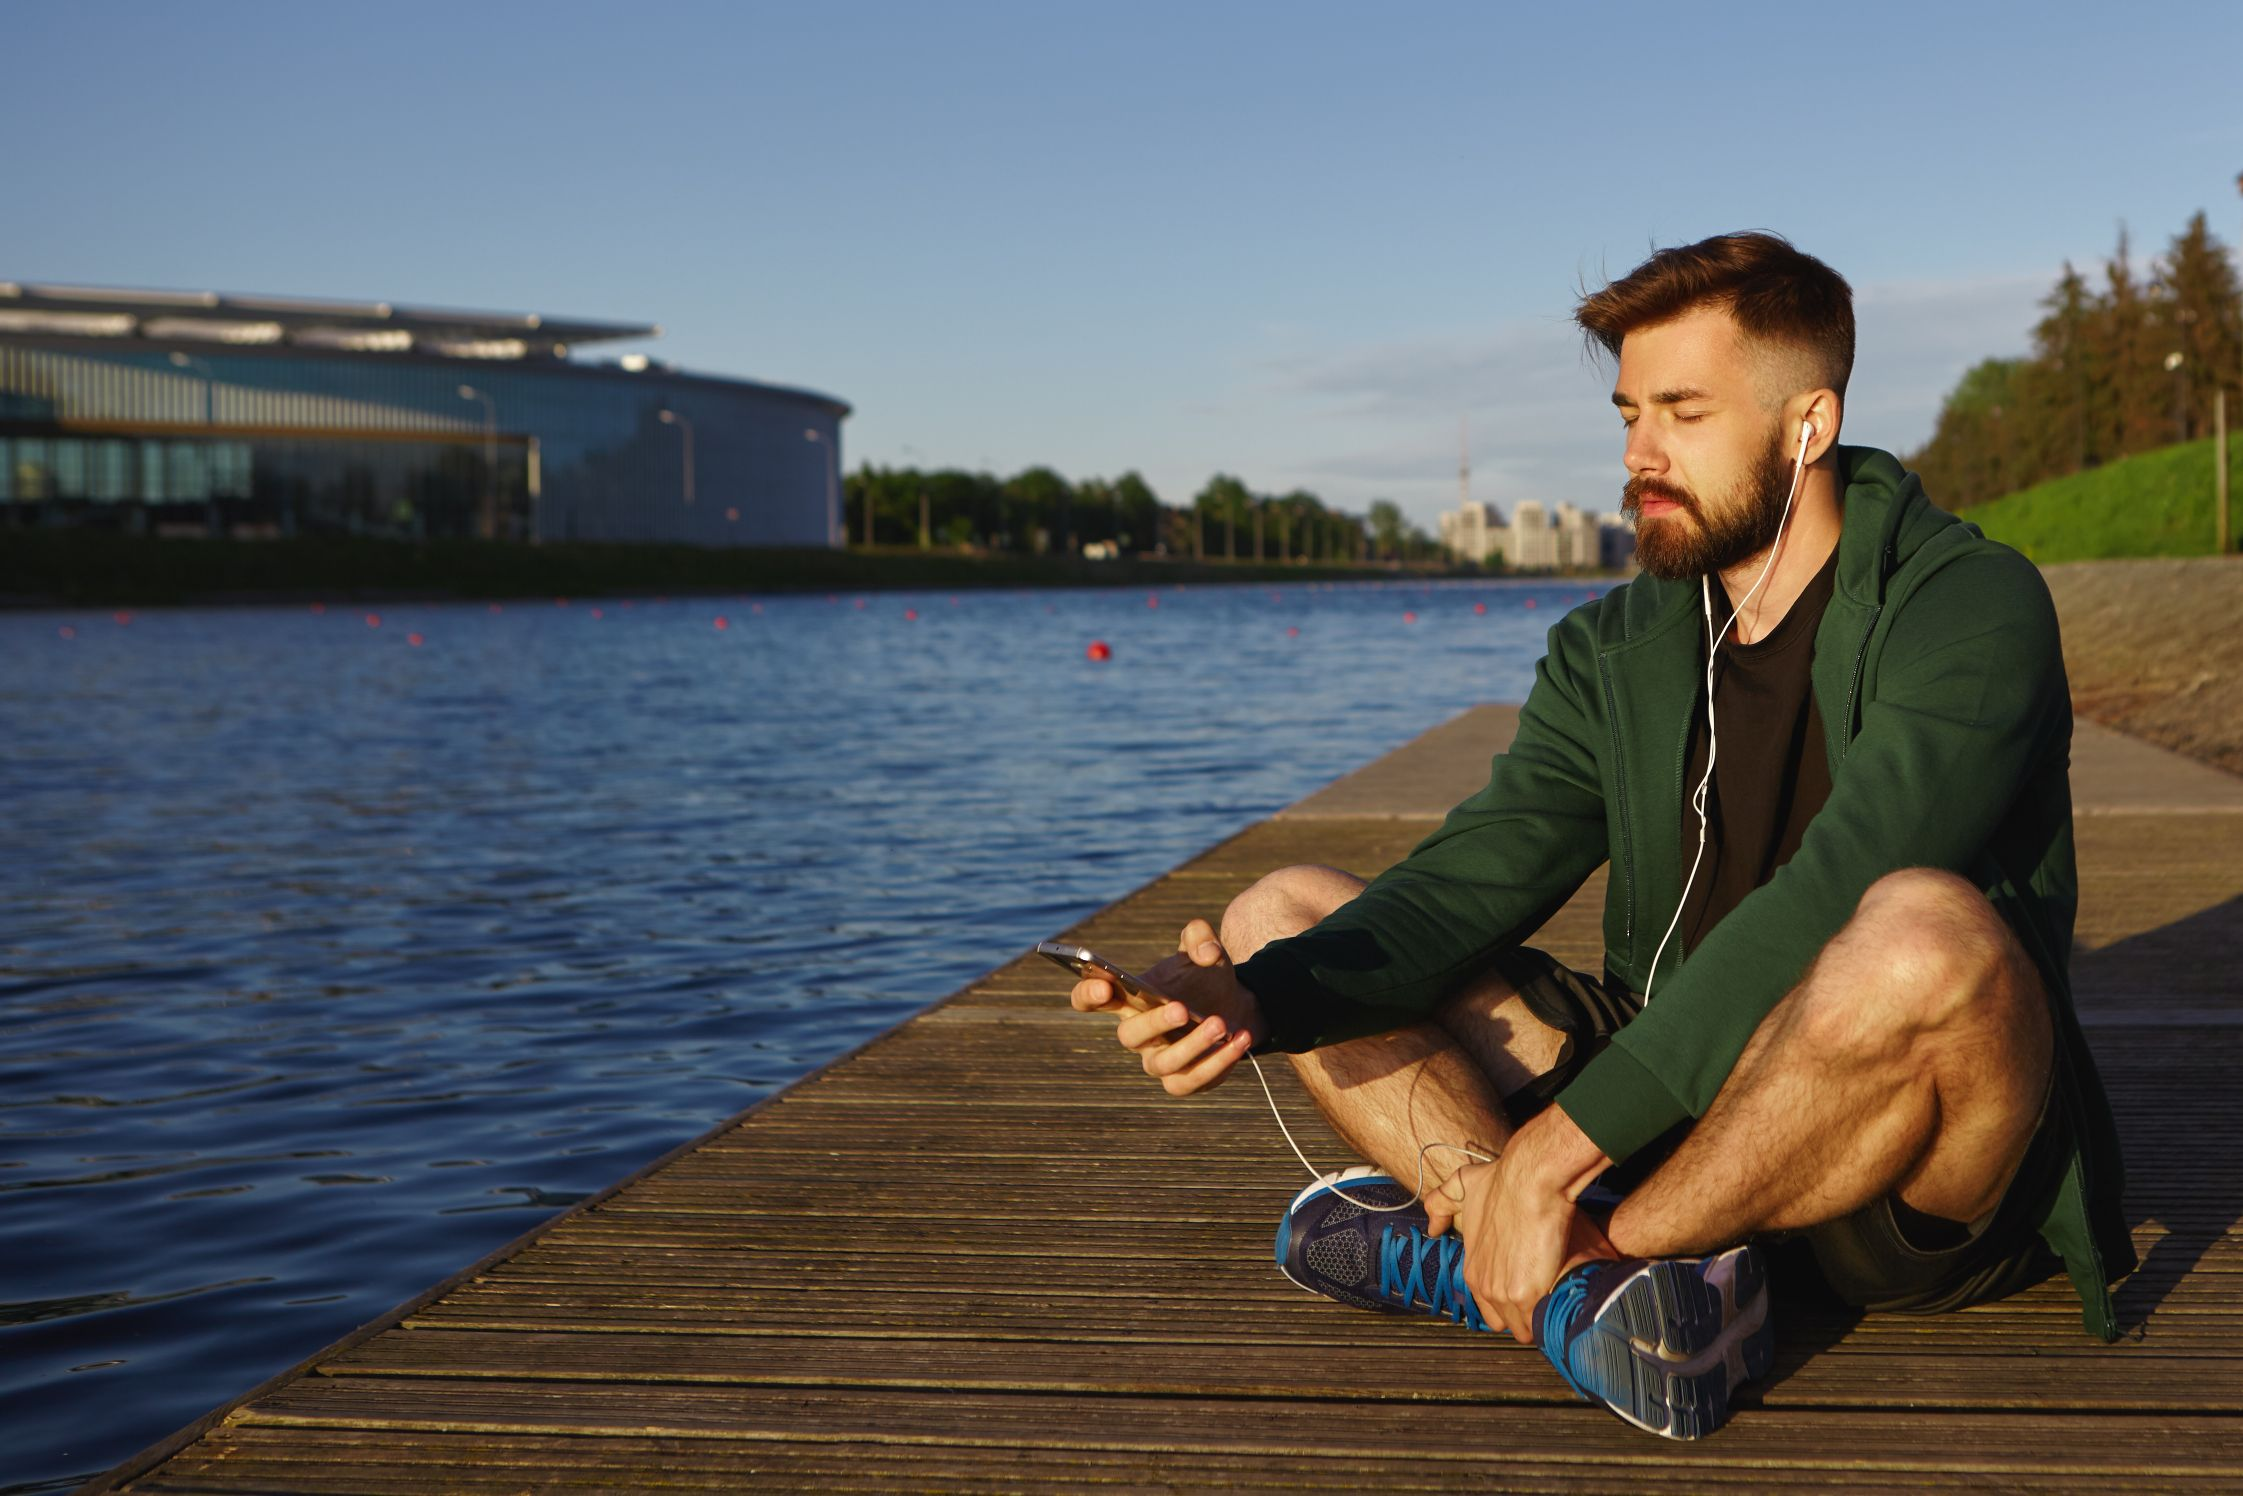 outdoor shot handsome unshaven young guy with stubble spending peaceful summer morning alone by lake sitting with eyes closed listening meditative music tracks modern smart phone